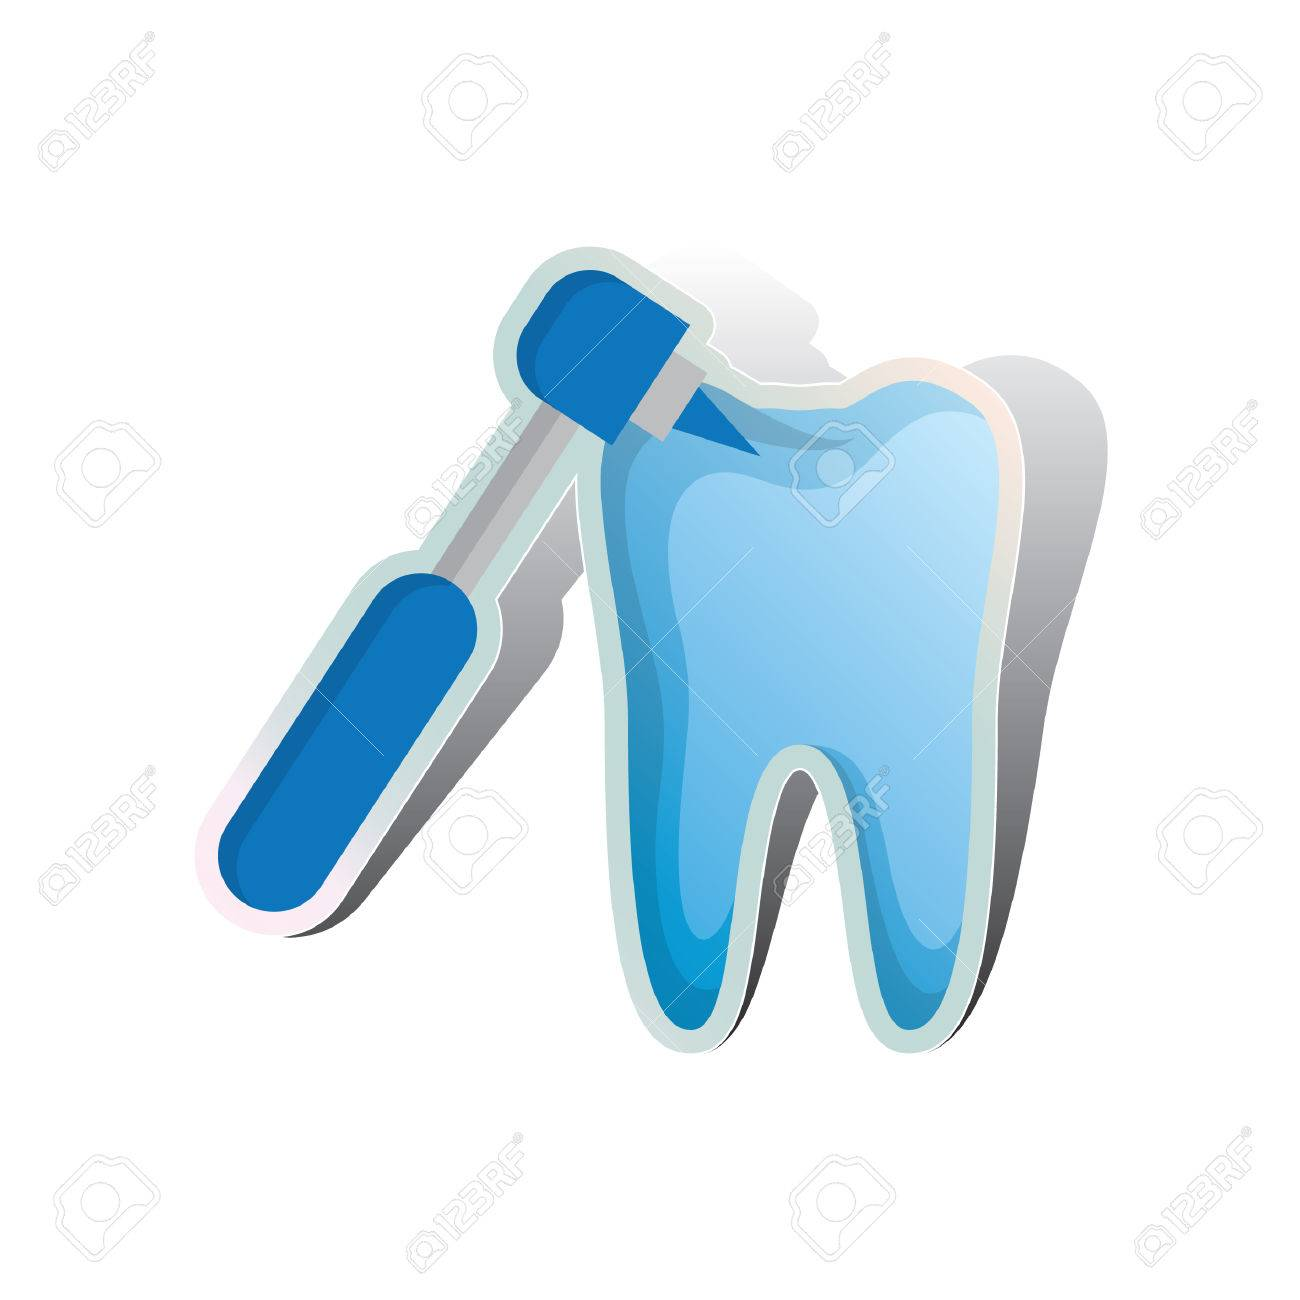 dental drill drilling on tooth royalty free cliparts vectors and